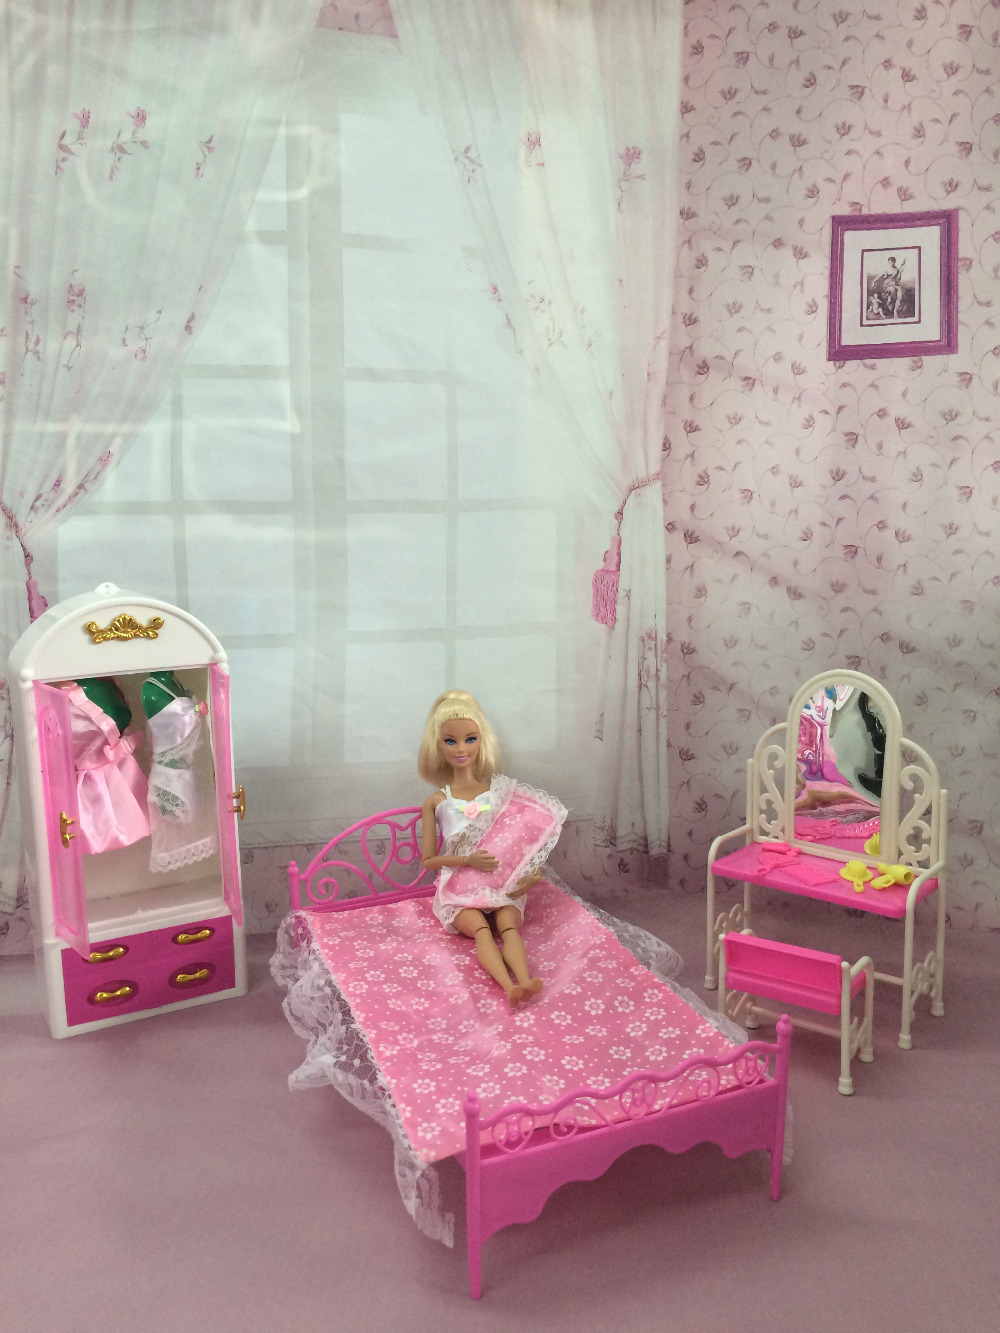 Wonderful Free Shipping One Set Doll Furniture Wardrobe+ Dresser +Chair + Bed+Pillows  Accessories For